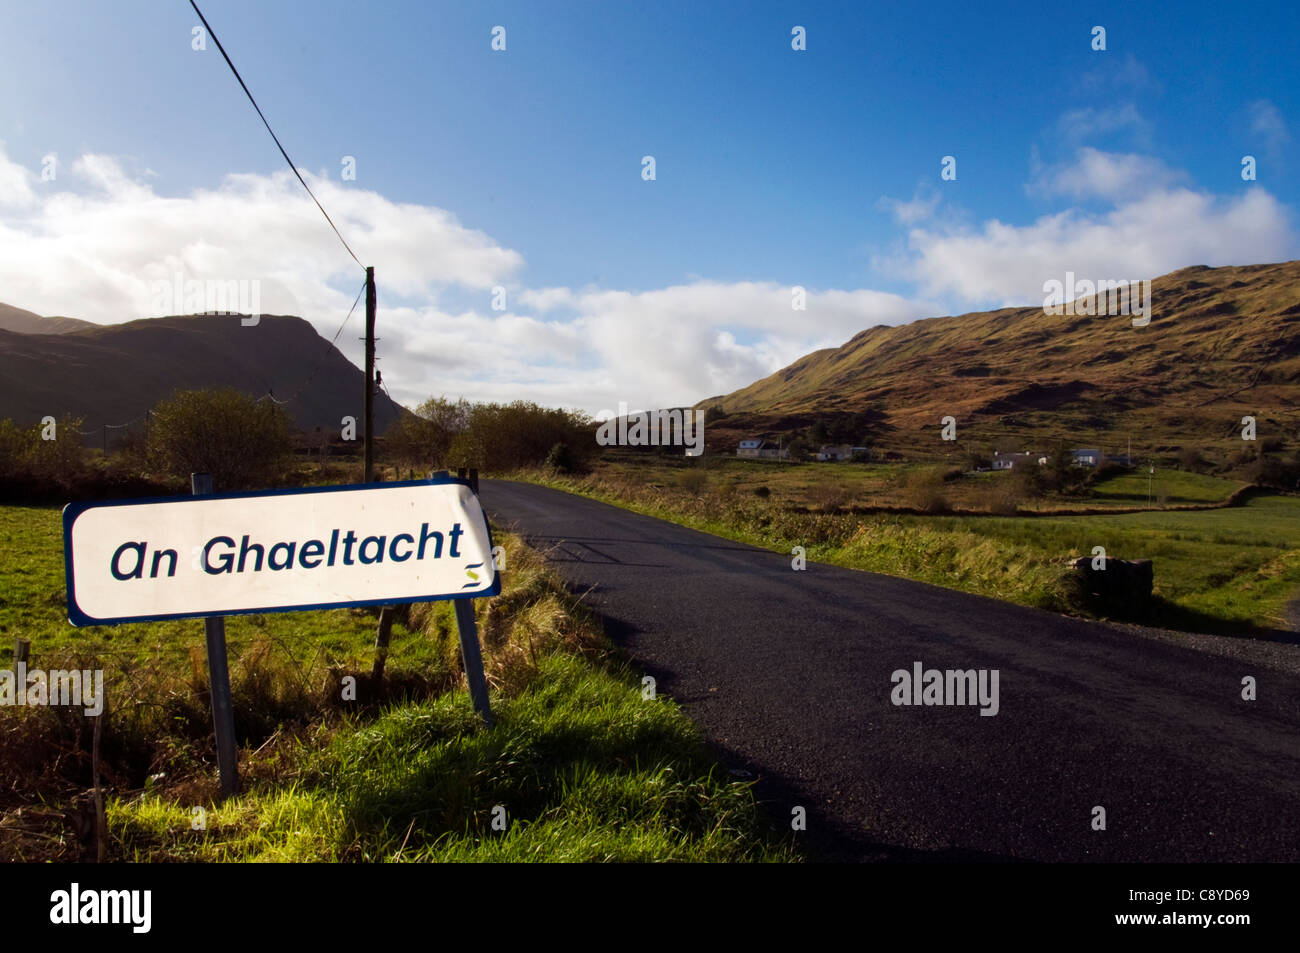 An Ghaeltacht road sign signpost in rural Ireland - Stock Image